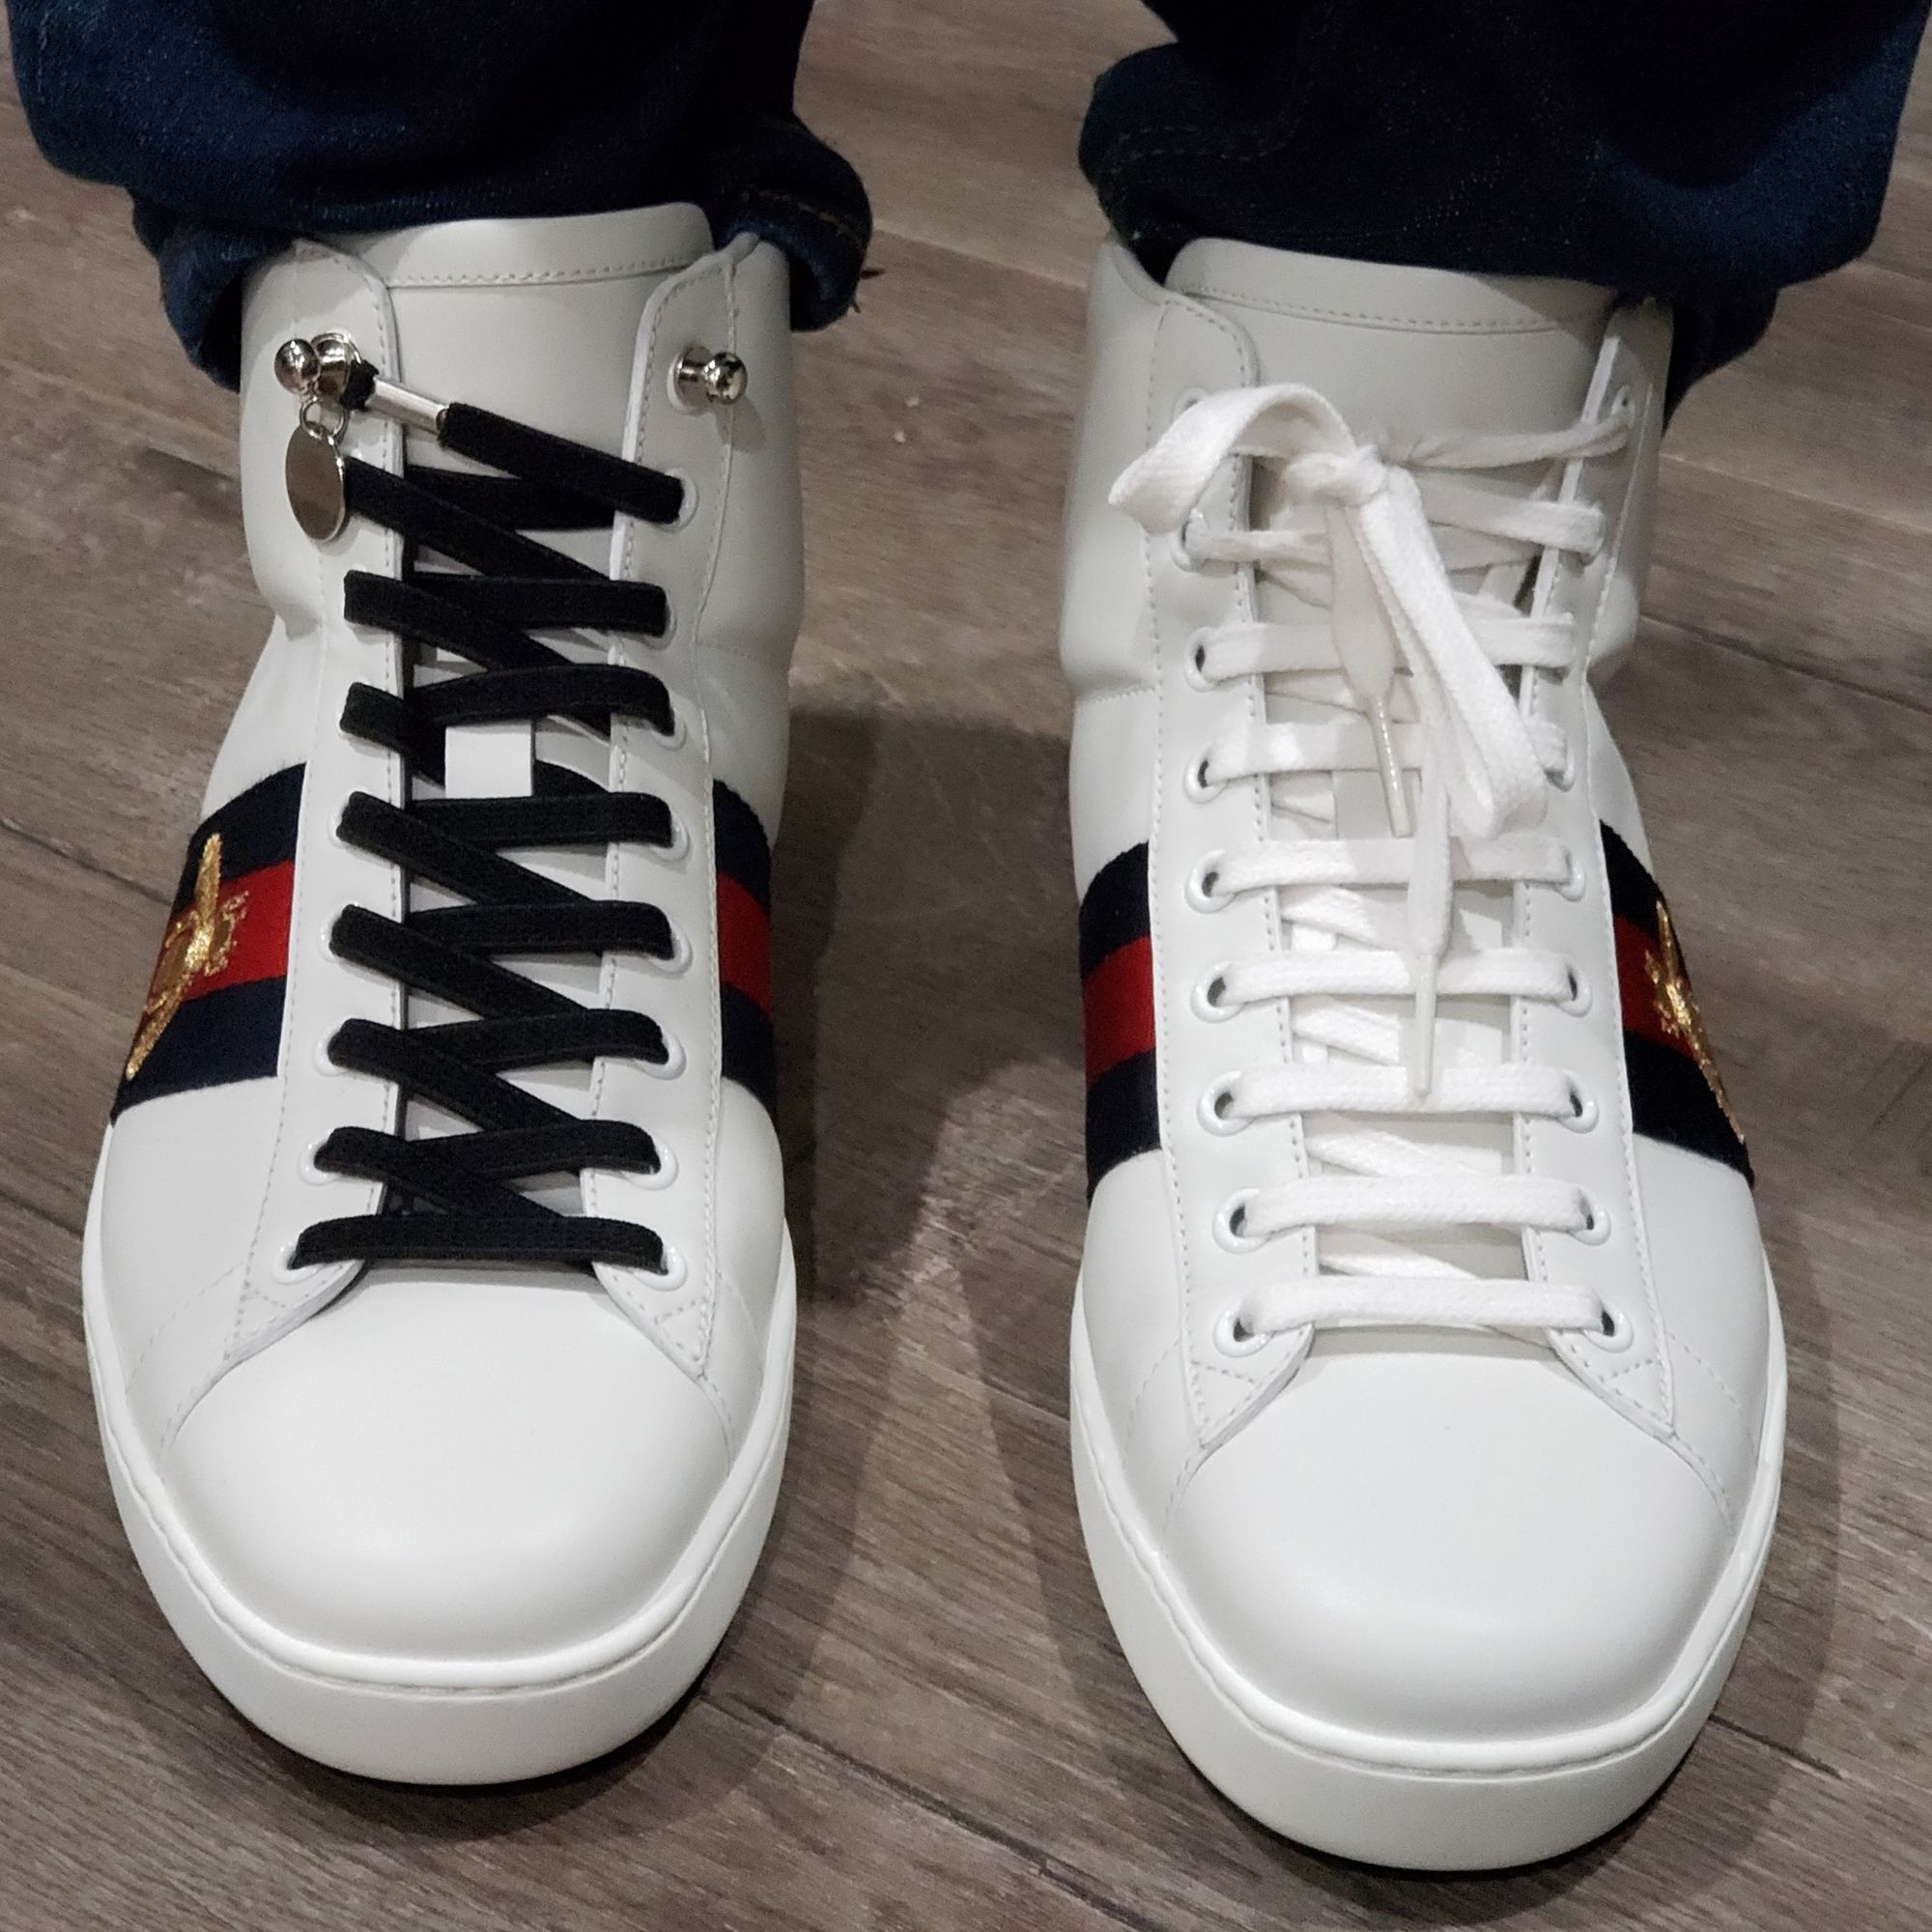 11e2d9253 using no tie shoelaces on Gucci High Top Sneakers | No Tie Shoelaces ...